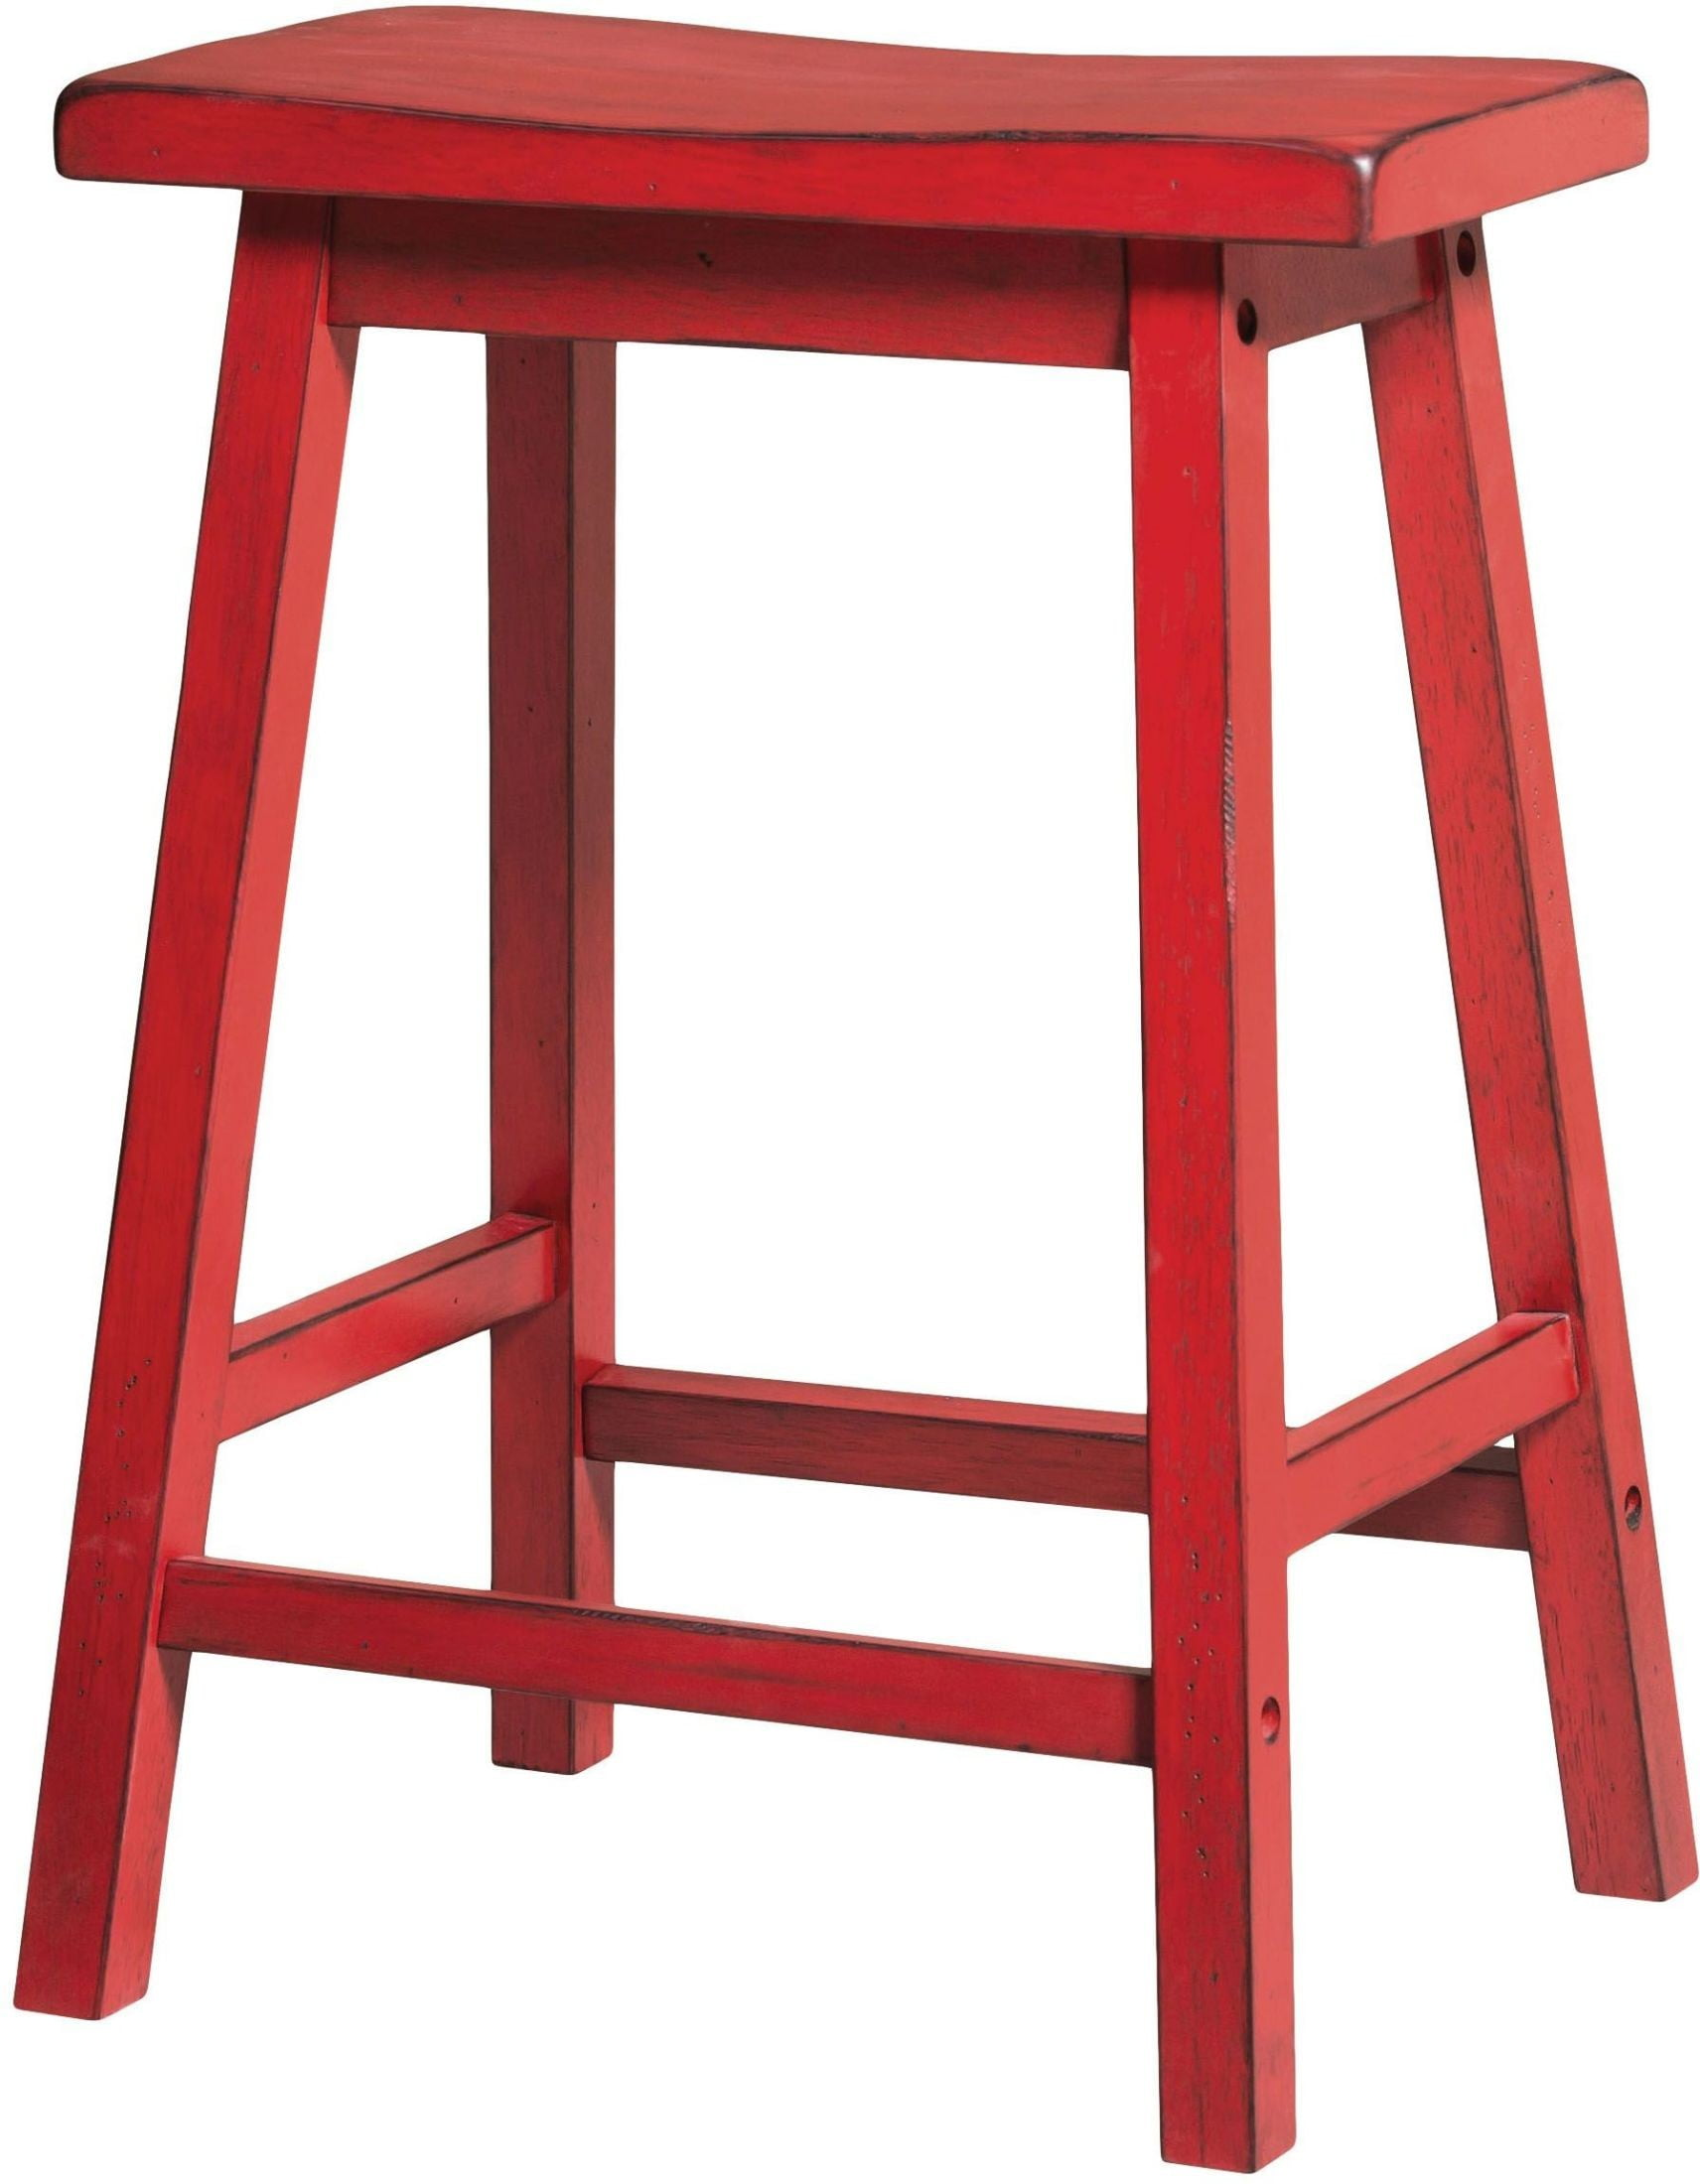 Gaucho Antique Red Counter Height Stool Set Of 2 From ACME Furniture |  Coleman Furniture